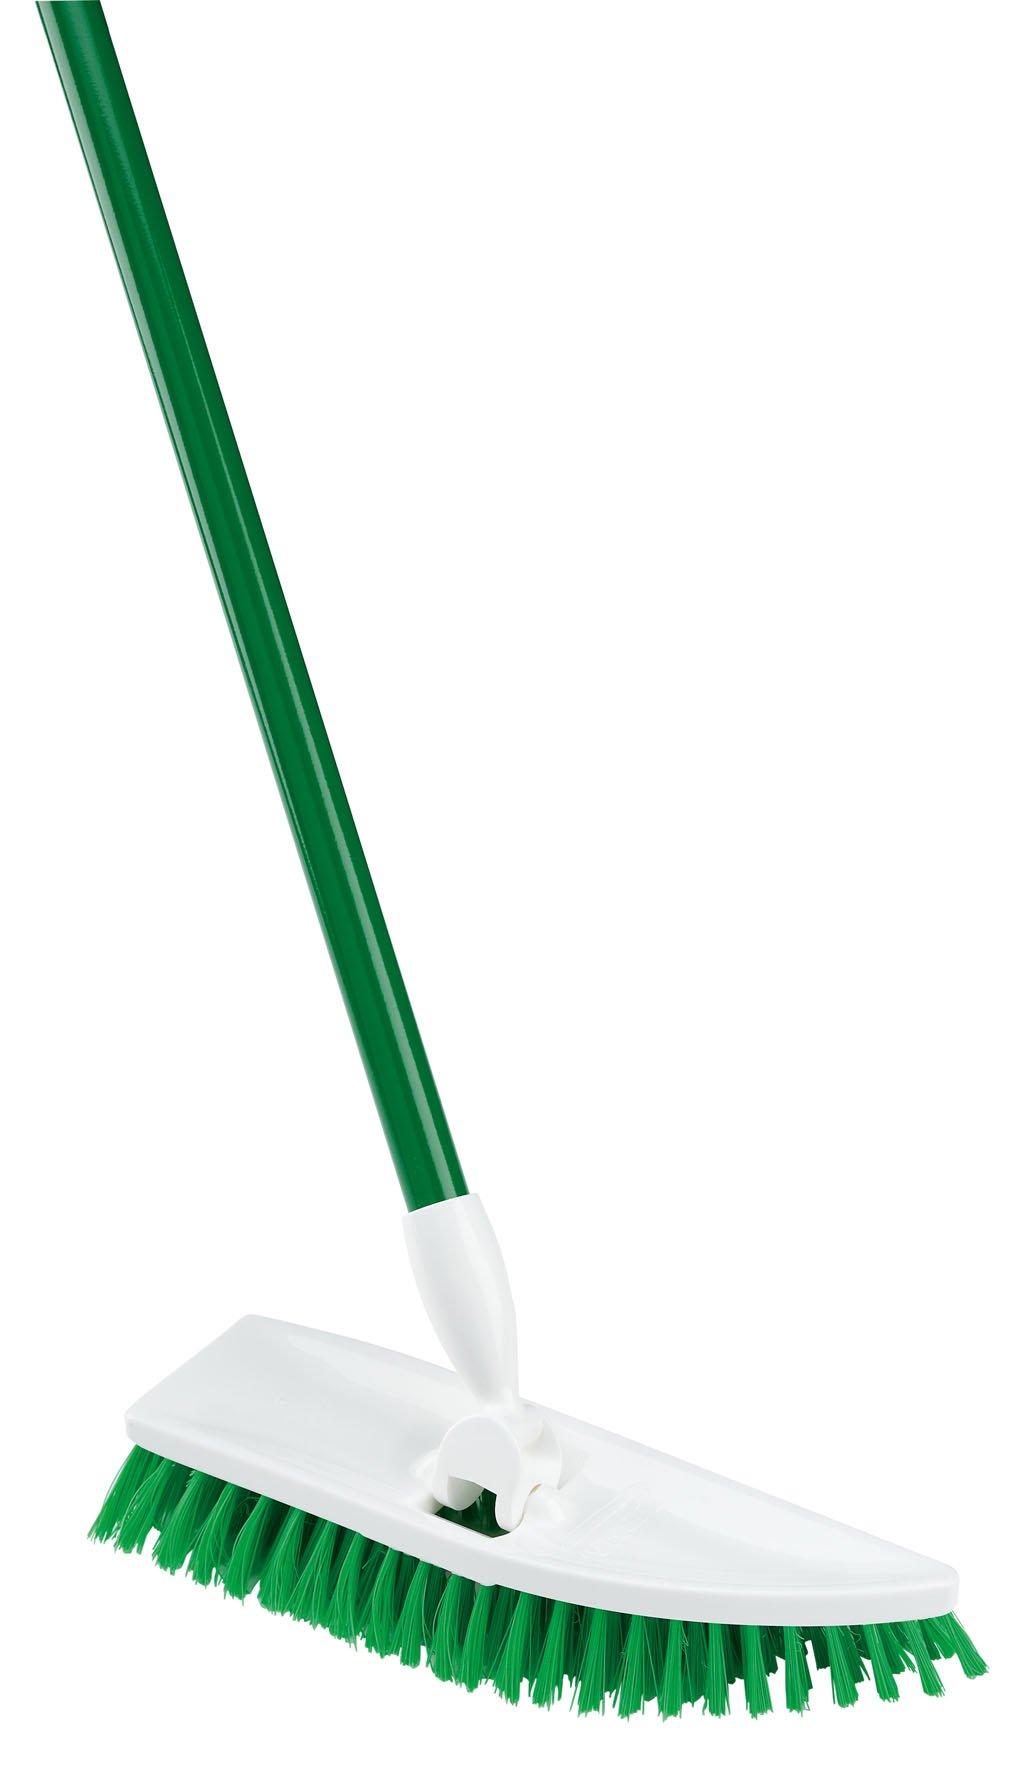 Libman 122 No Knees Floor Scrub with Pivot Head